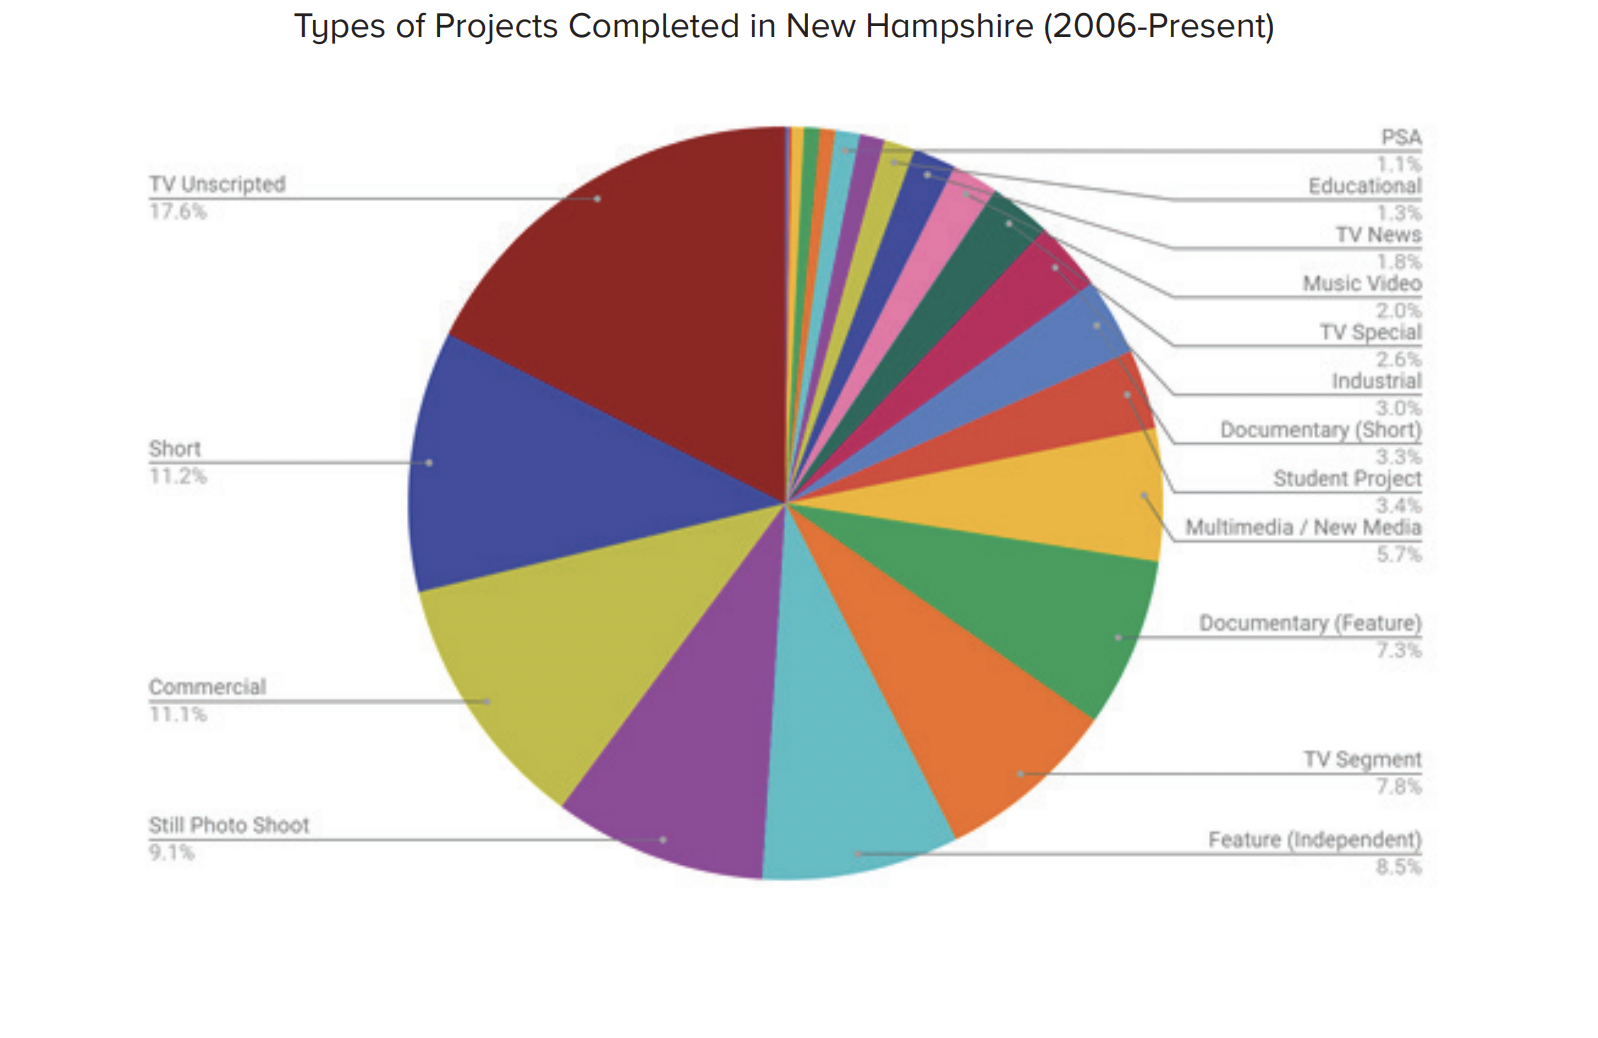 Pie chart on film and digital projects in NH